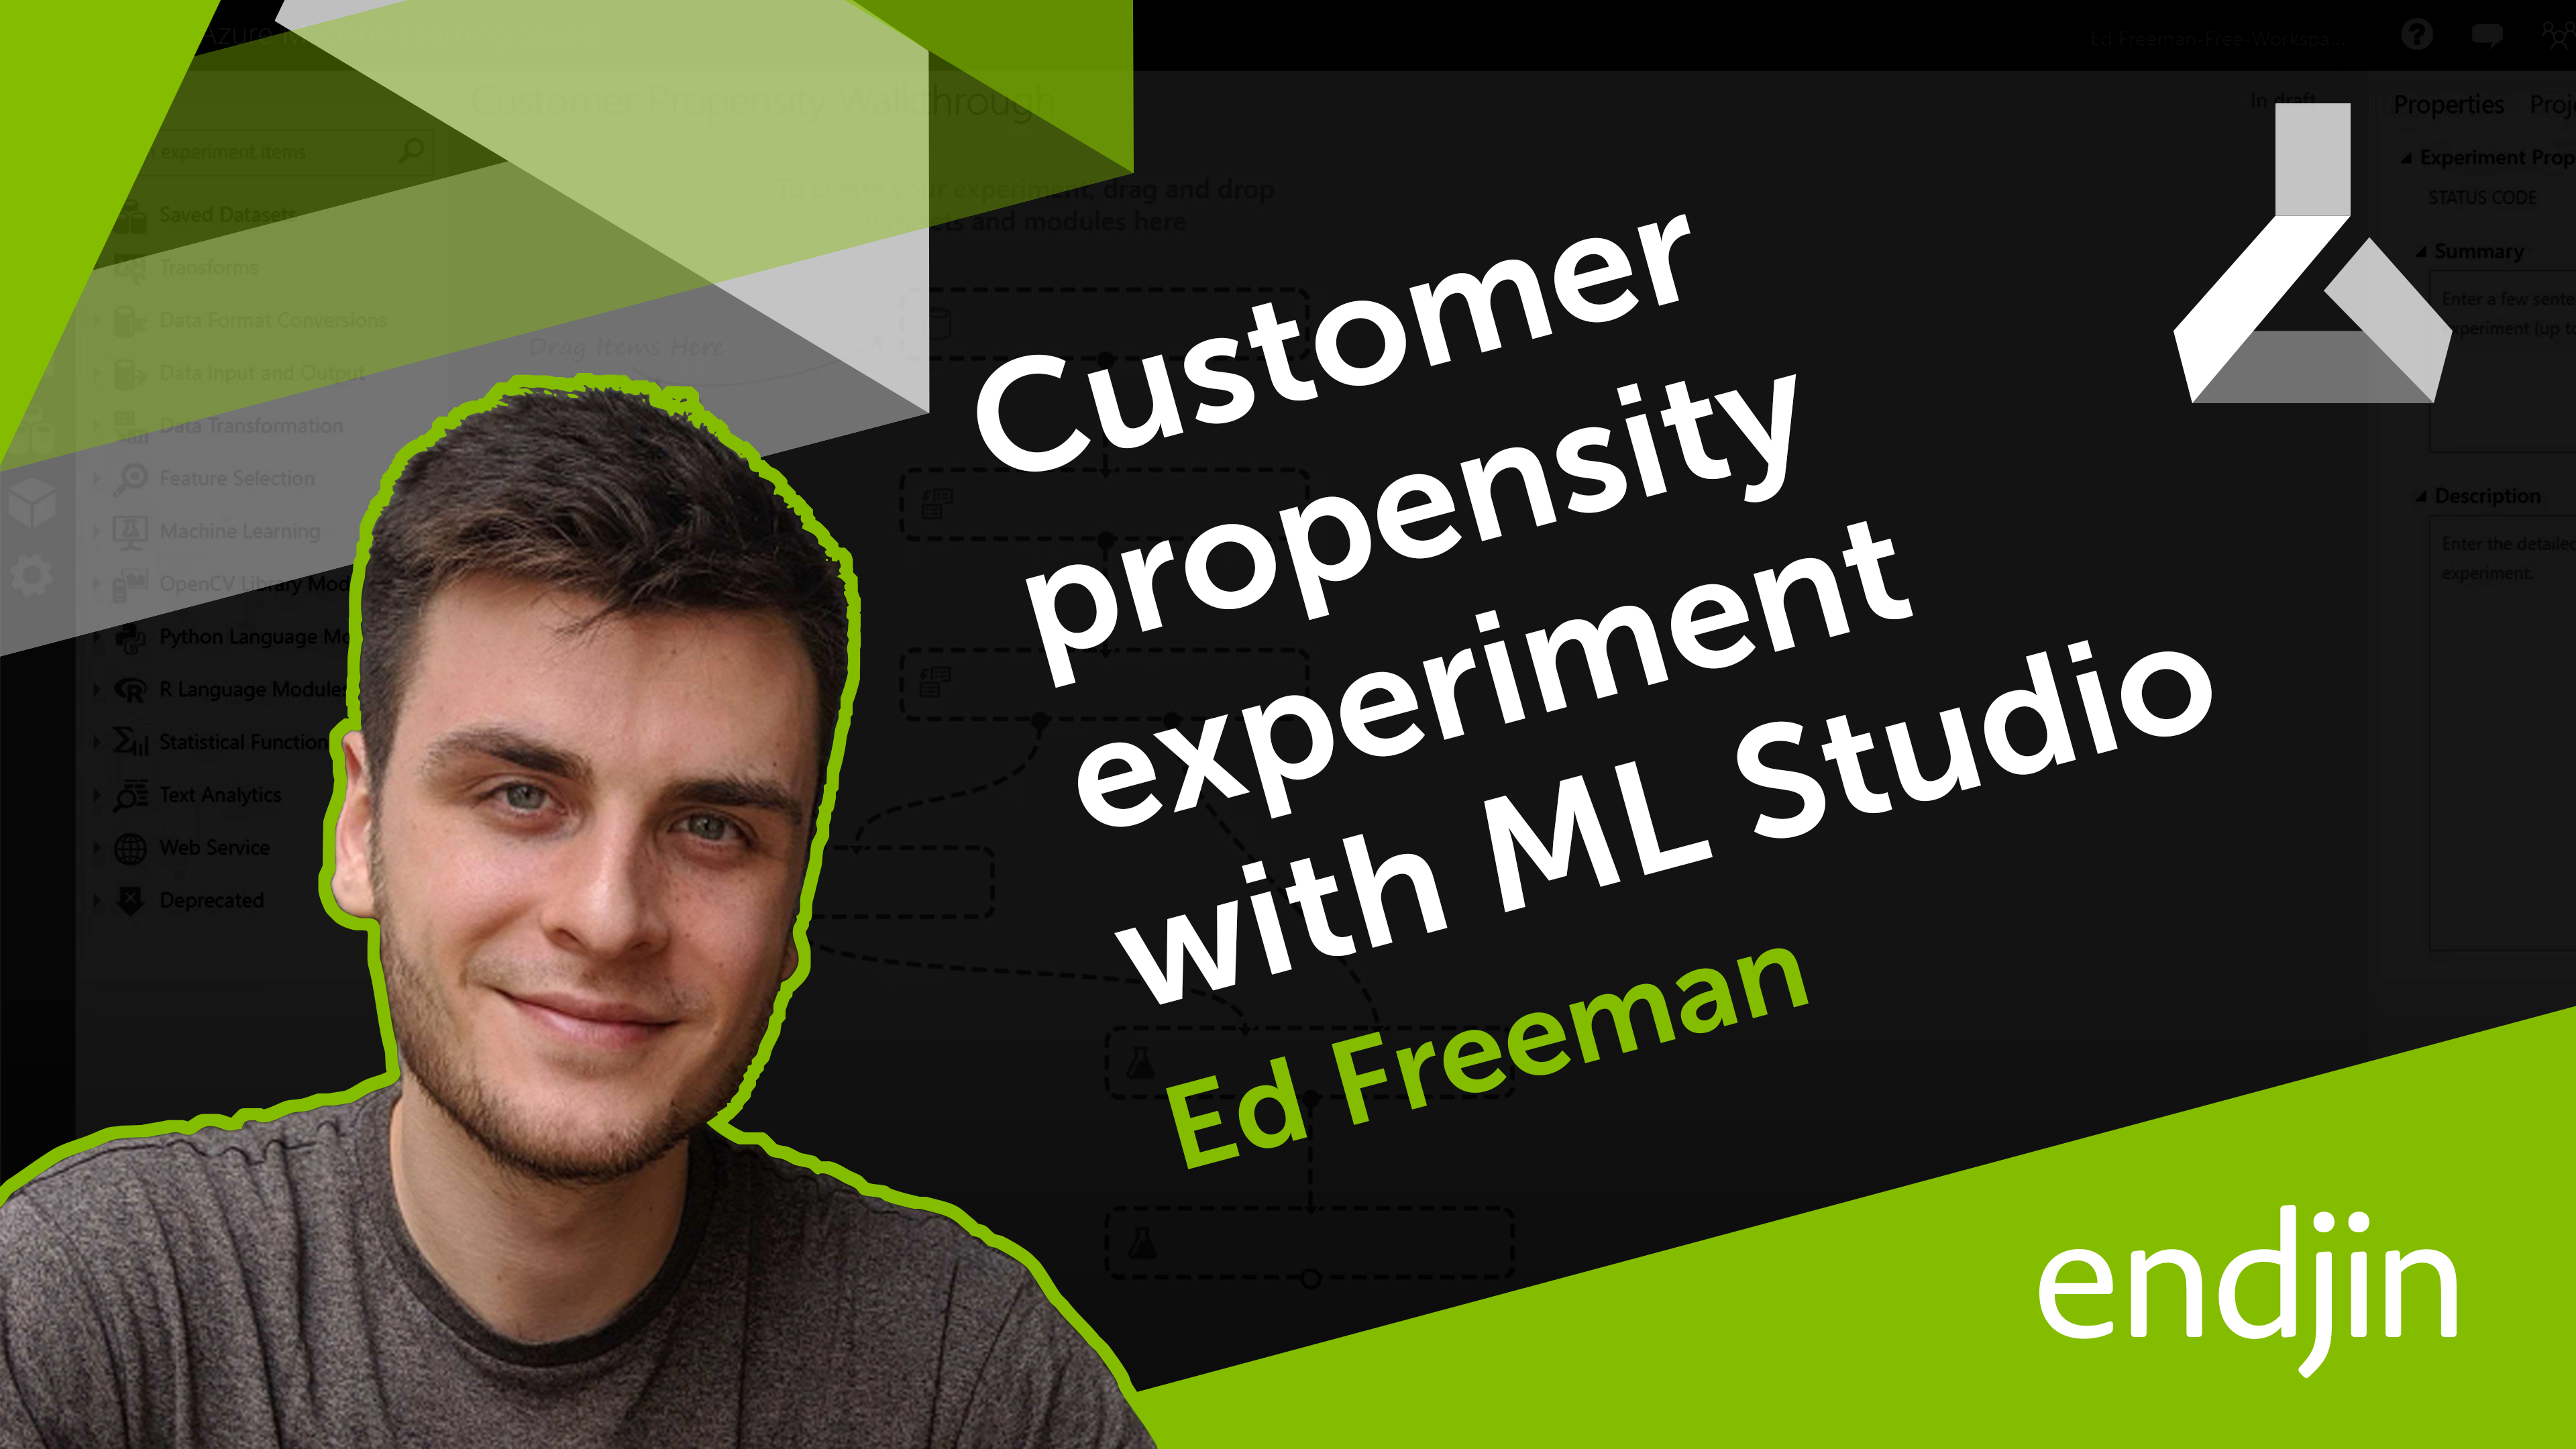 A step-by-step customer propensity experiment with Azure Machine Learning Studio